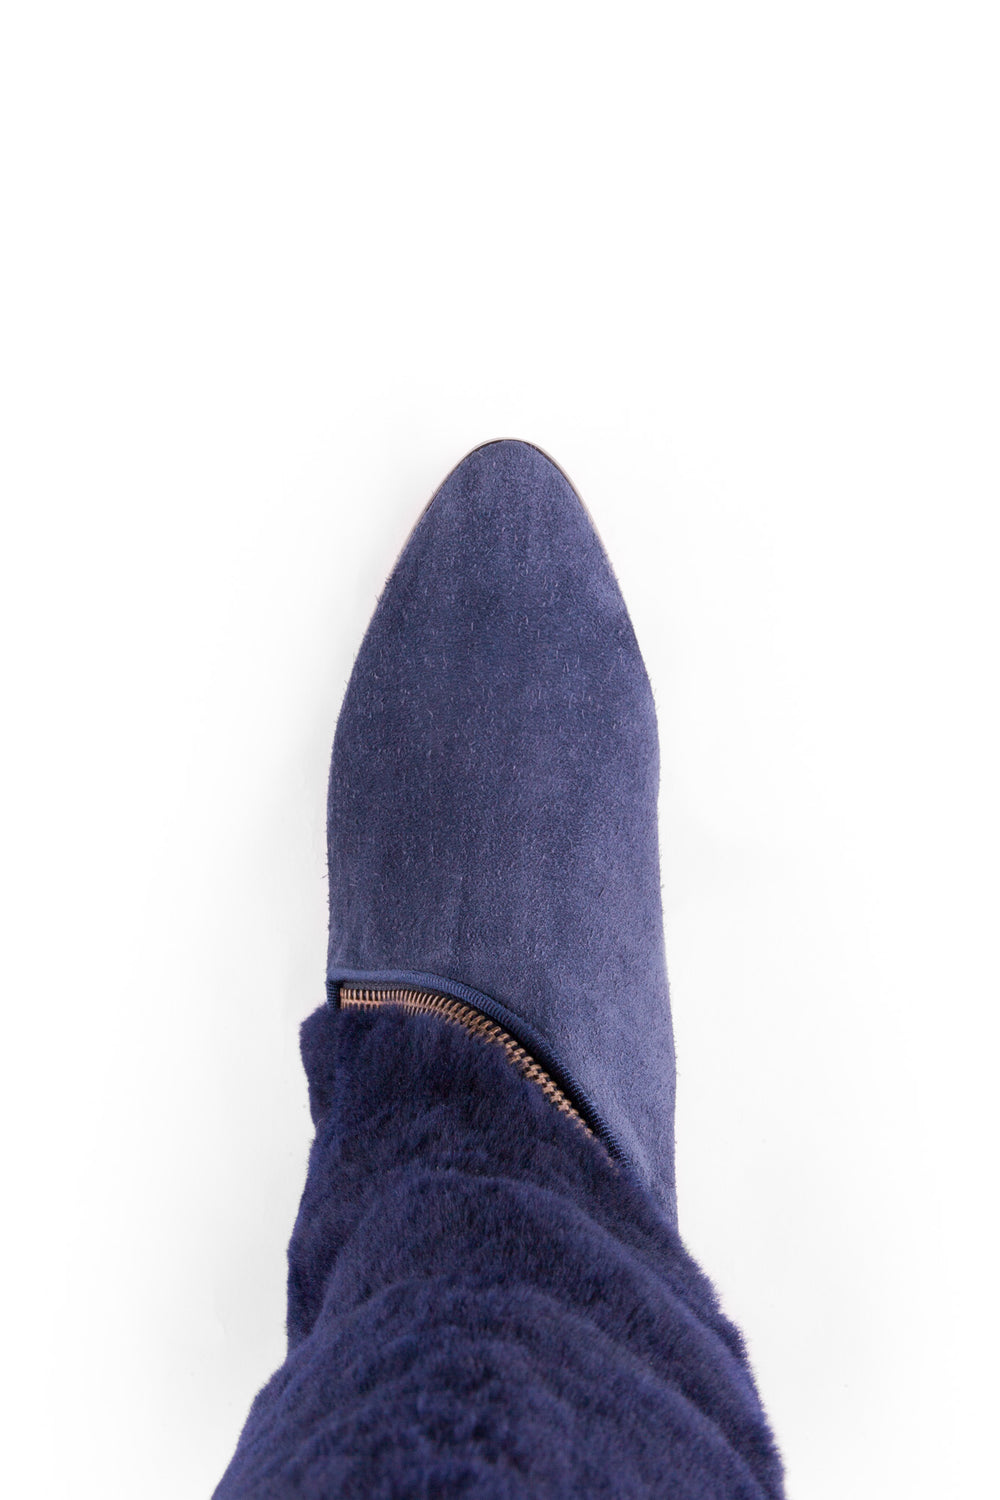 The Gilliam in navy shearling